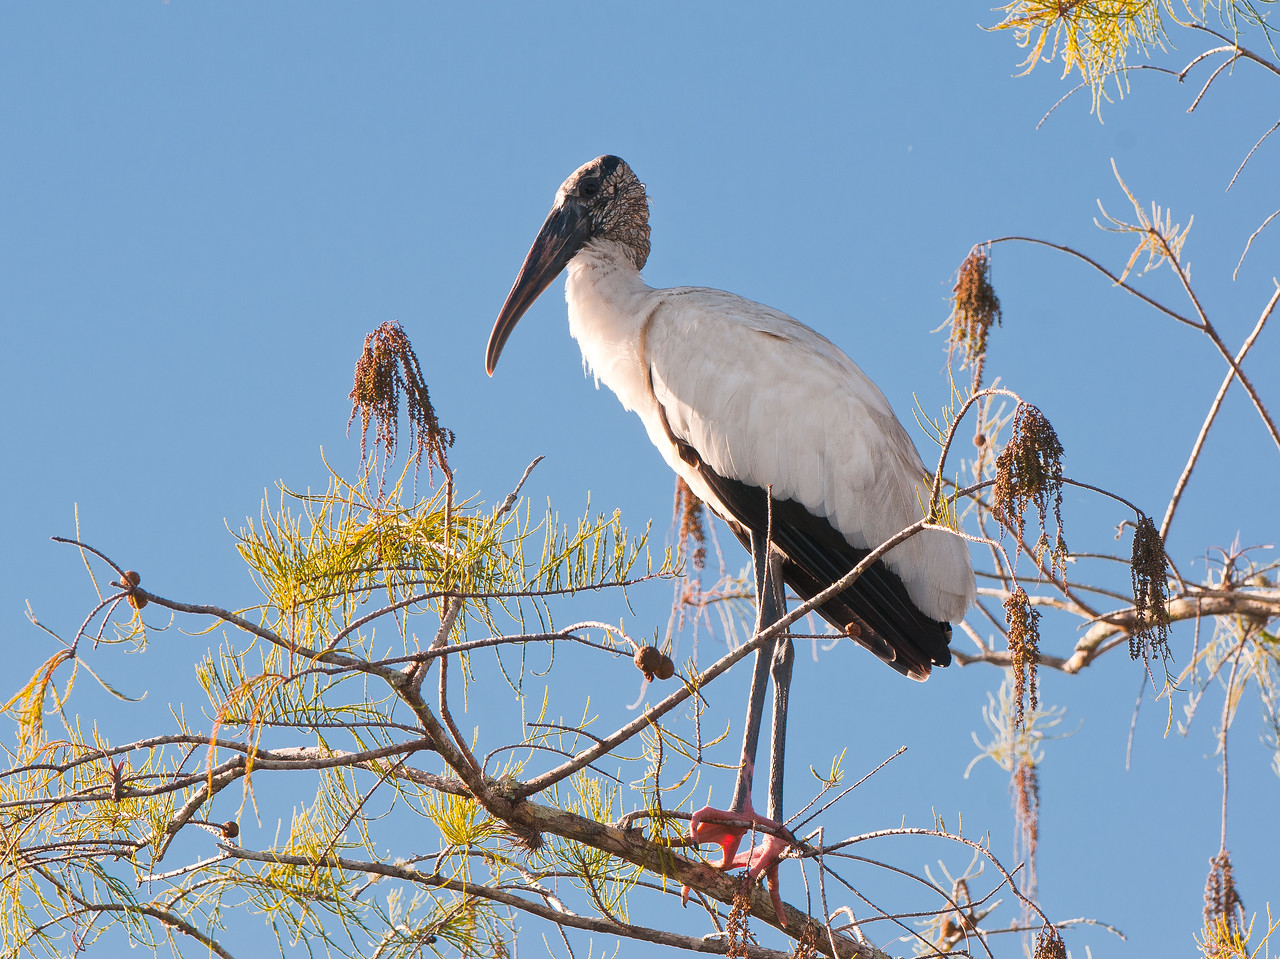 A bird on the endangered species list, this Wood Stork stands in a Florida pine tree.